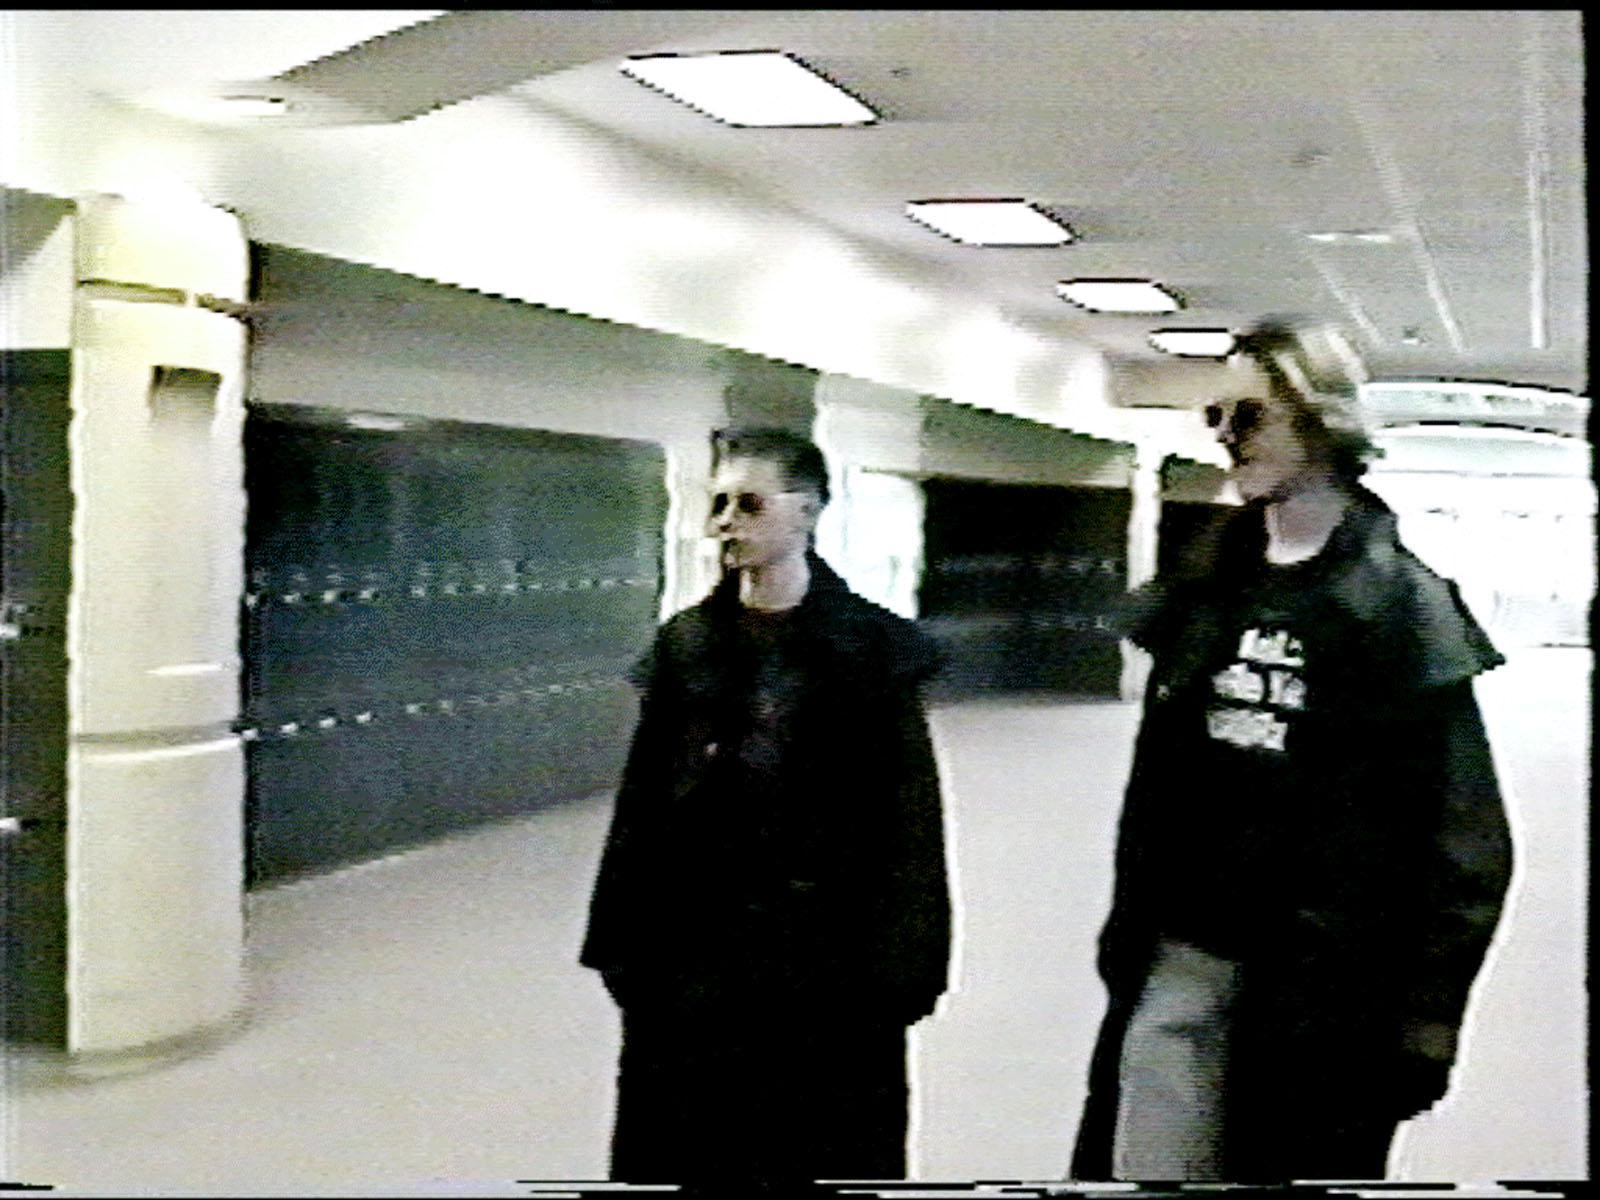 thesis on columbine school shooting Problem statement: the response to the shootings in columbine could have been handled more effectively if there was a solid coordinate effort from law enforcement and emergency units in the area.